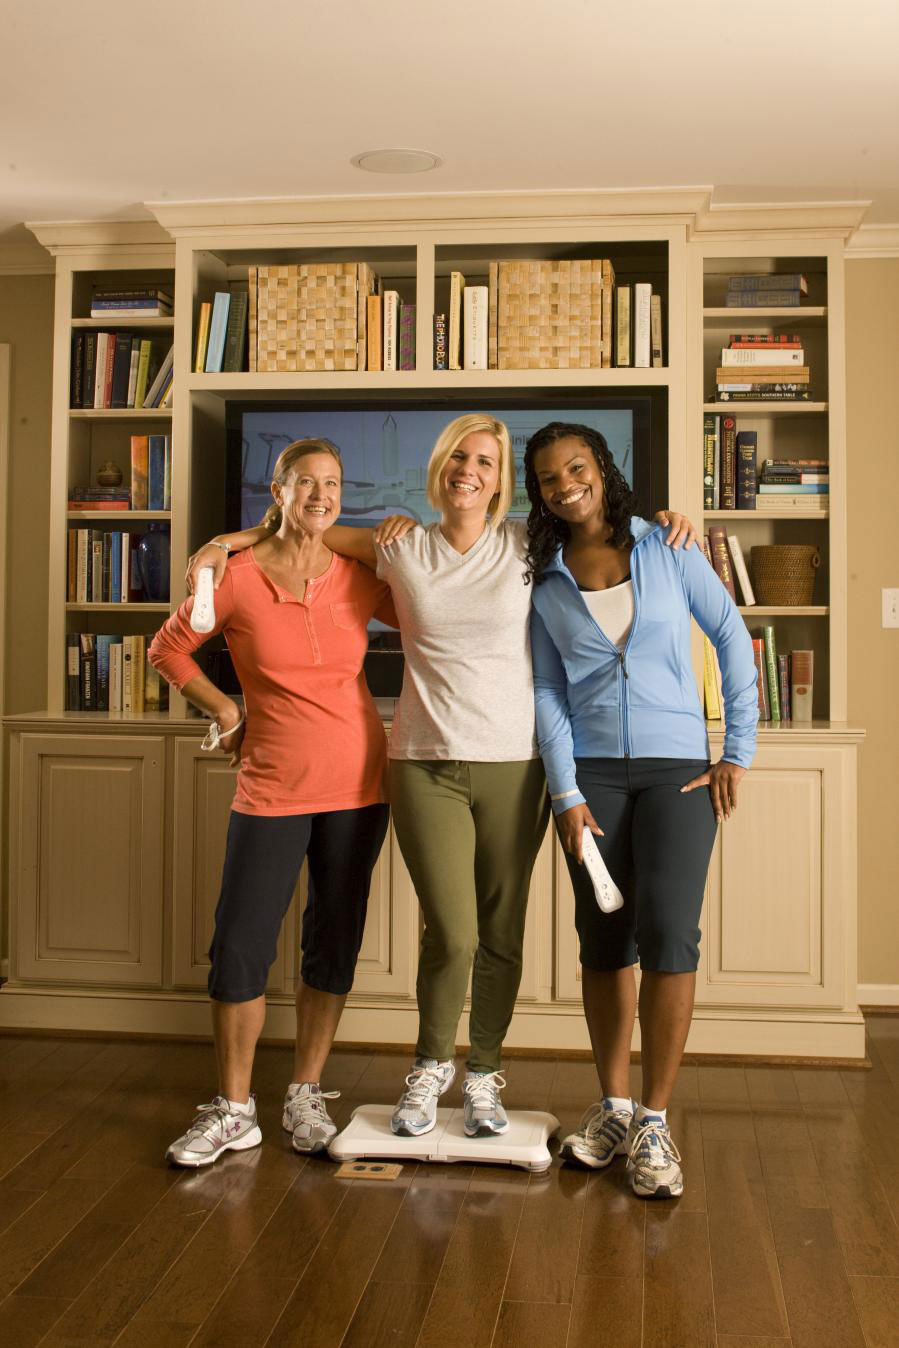 wii fit group